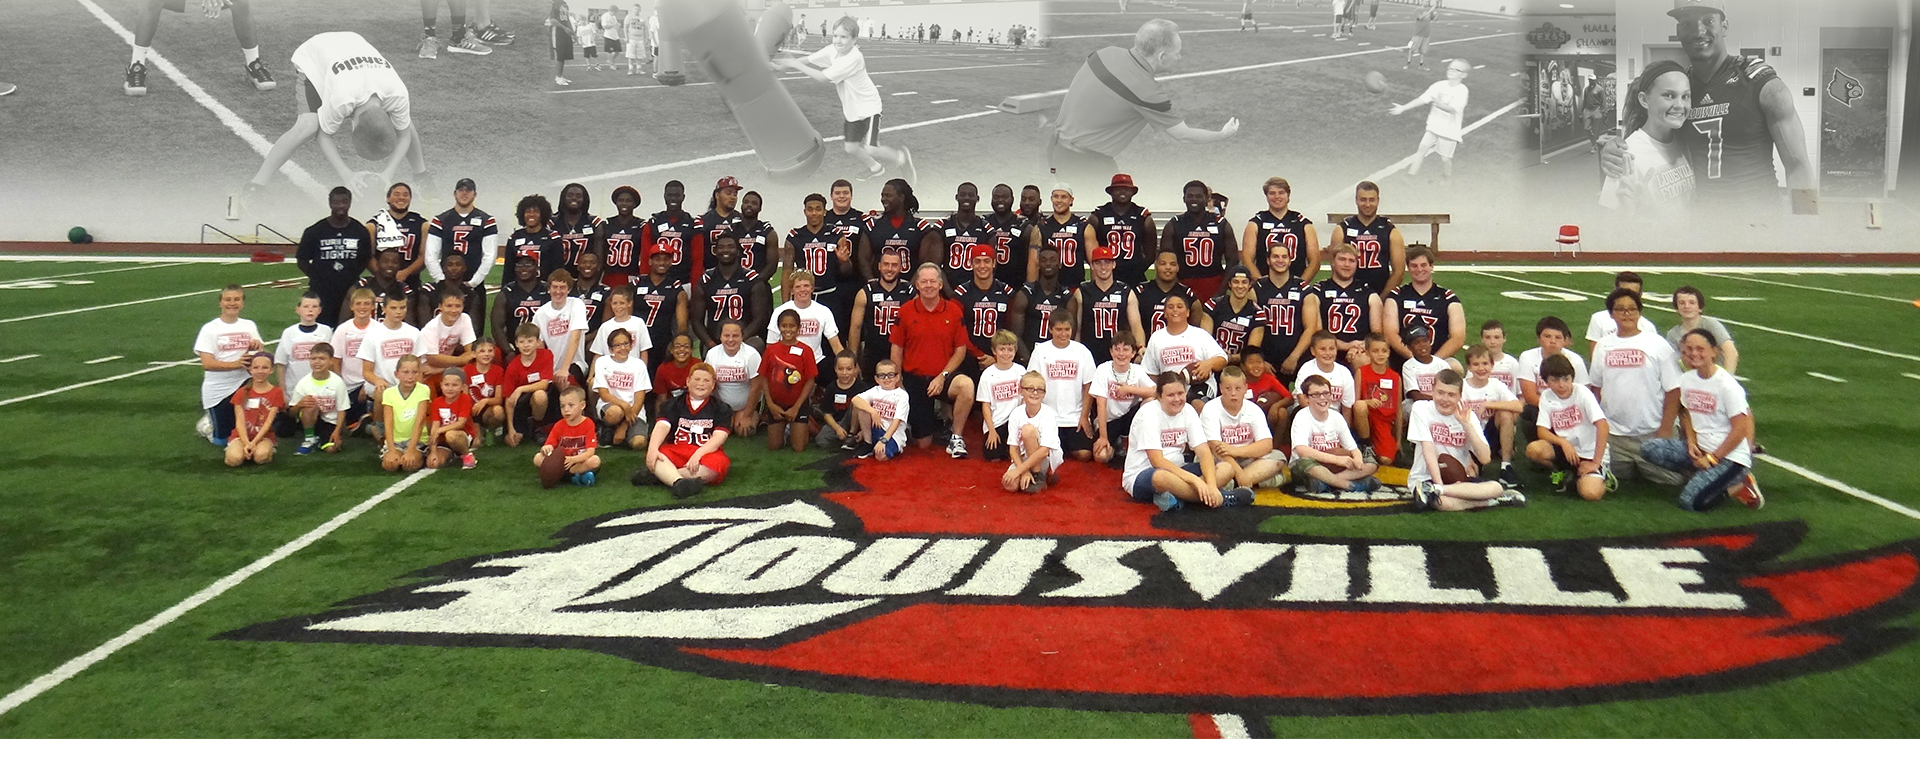 University of Louisville Football team Just for Kids Football Clinic